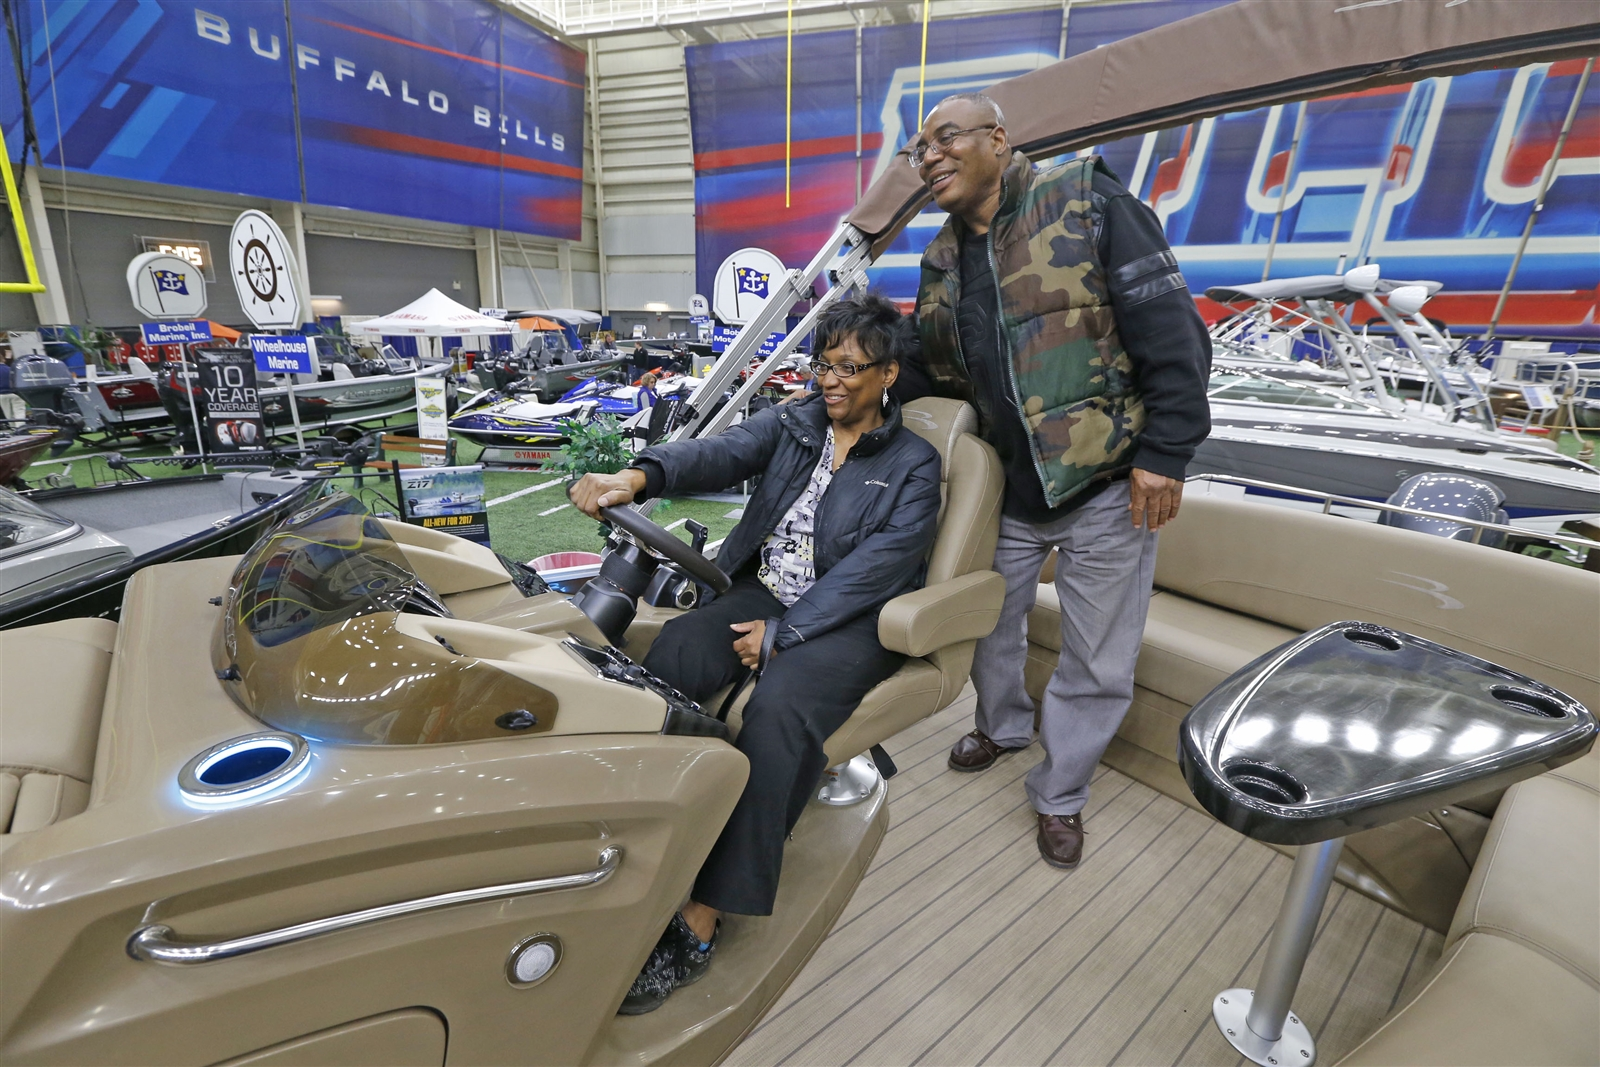 Zena Haywood, at the helm, and her fiancee Tommie Rollins of Buffalo dream a little.